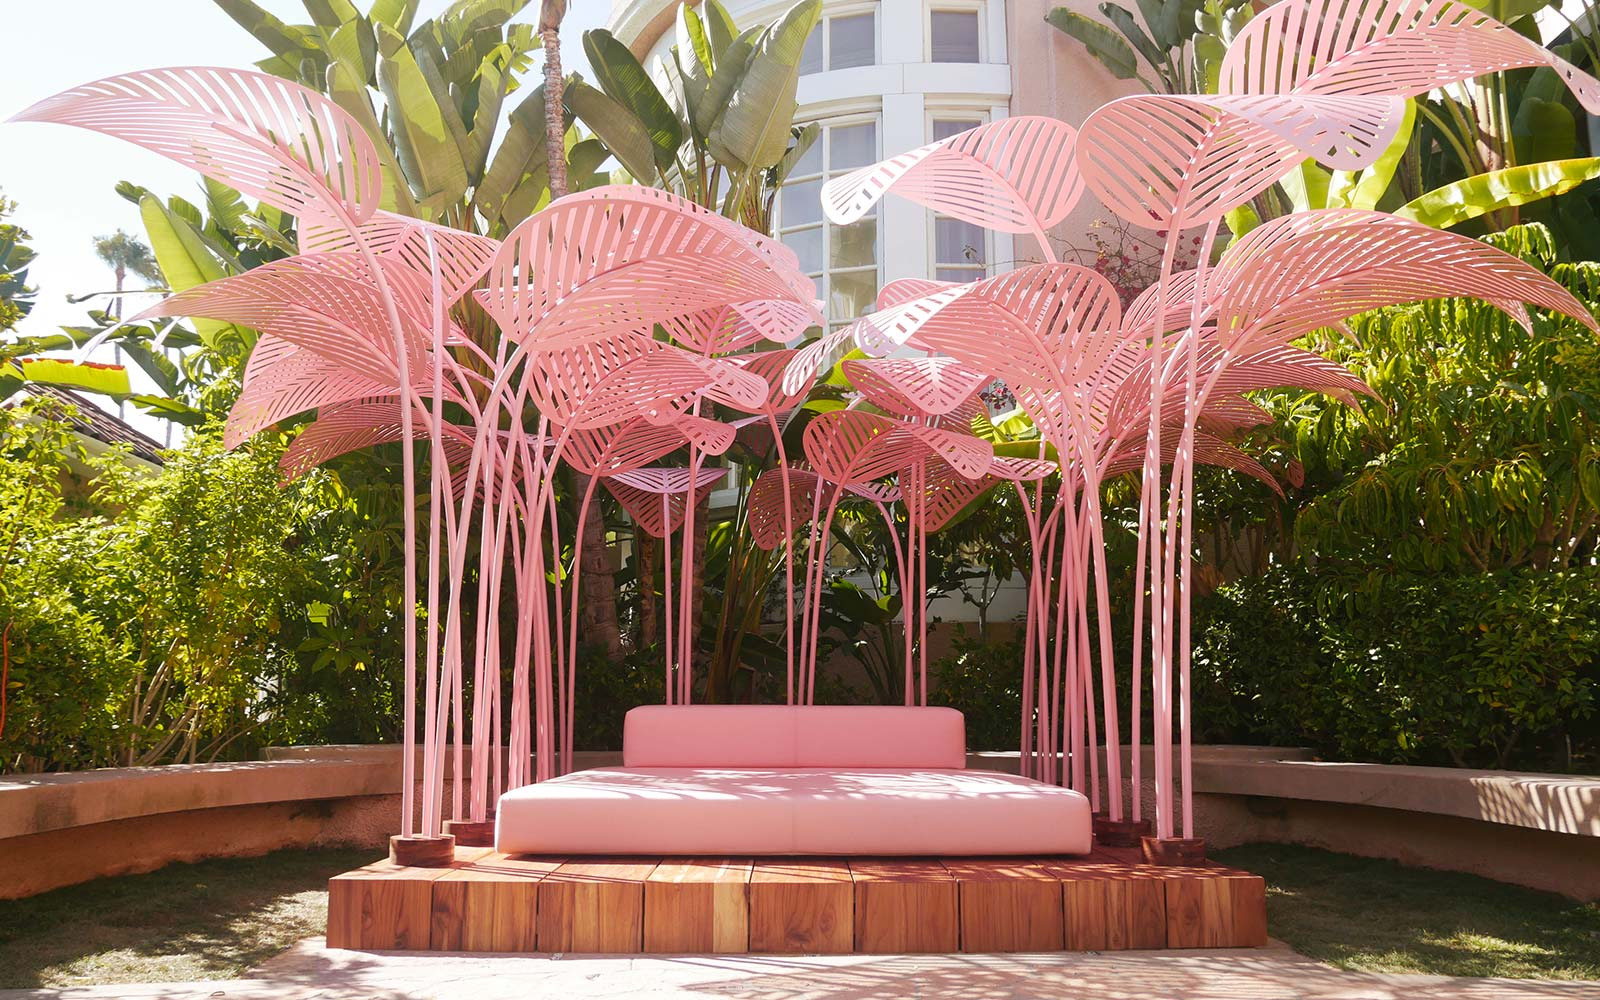 This Gorgeous Daybed at The Beverly Hills Hotel Is Actually an Art Installation